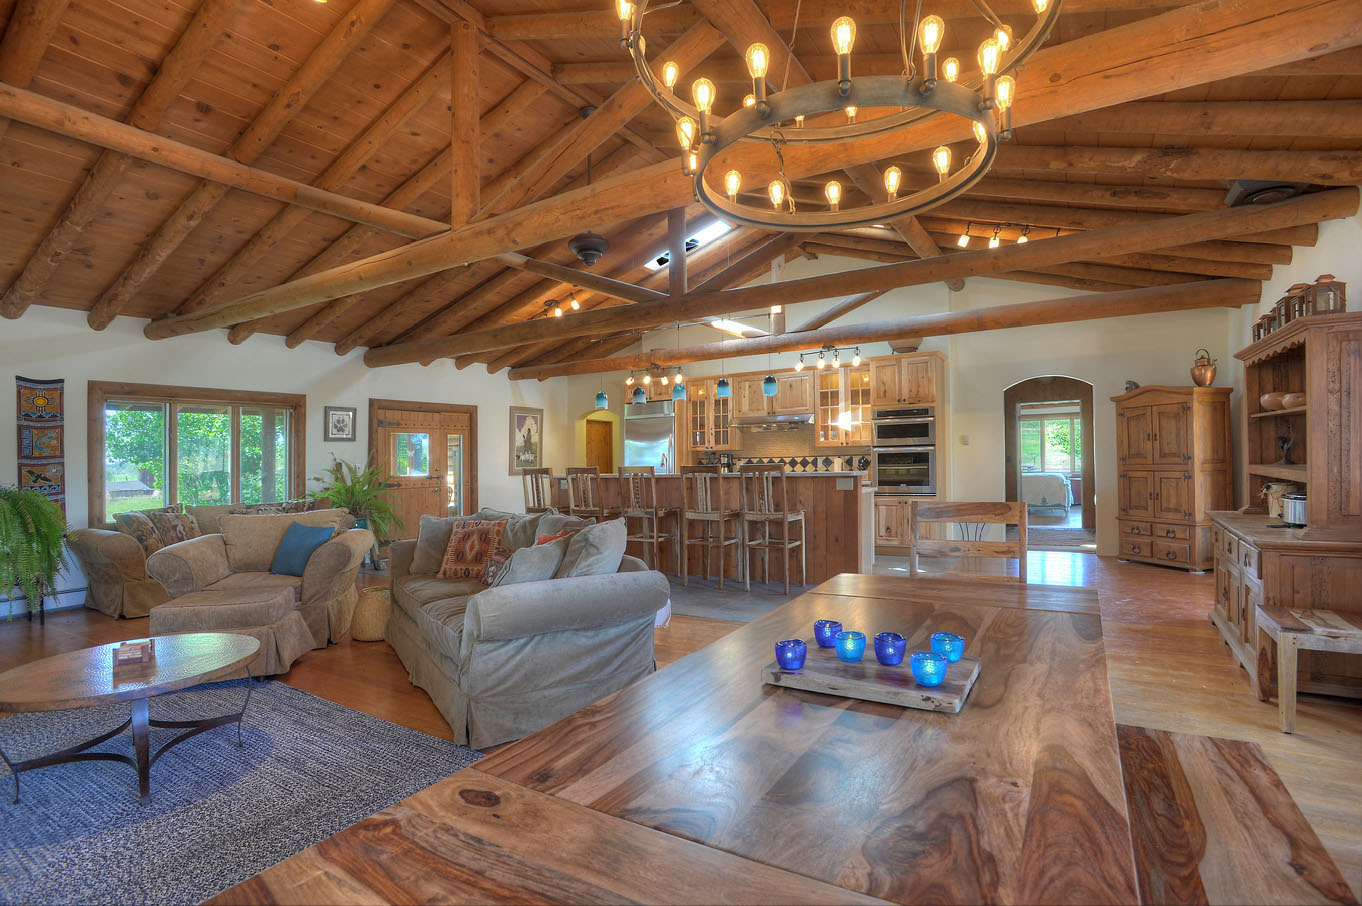 Vacation accommodations of durango vacation rentals for Cabins to stay in durango colorado